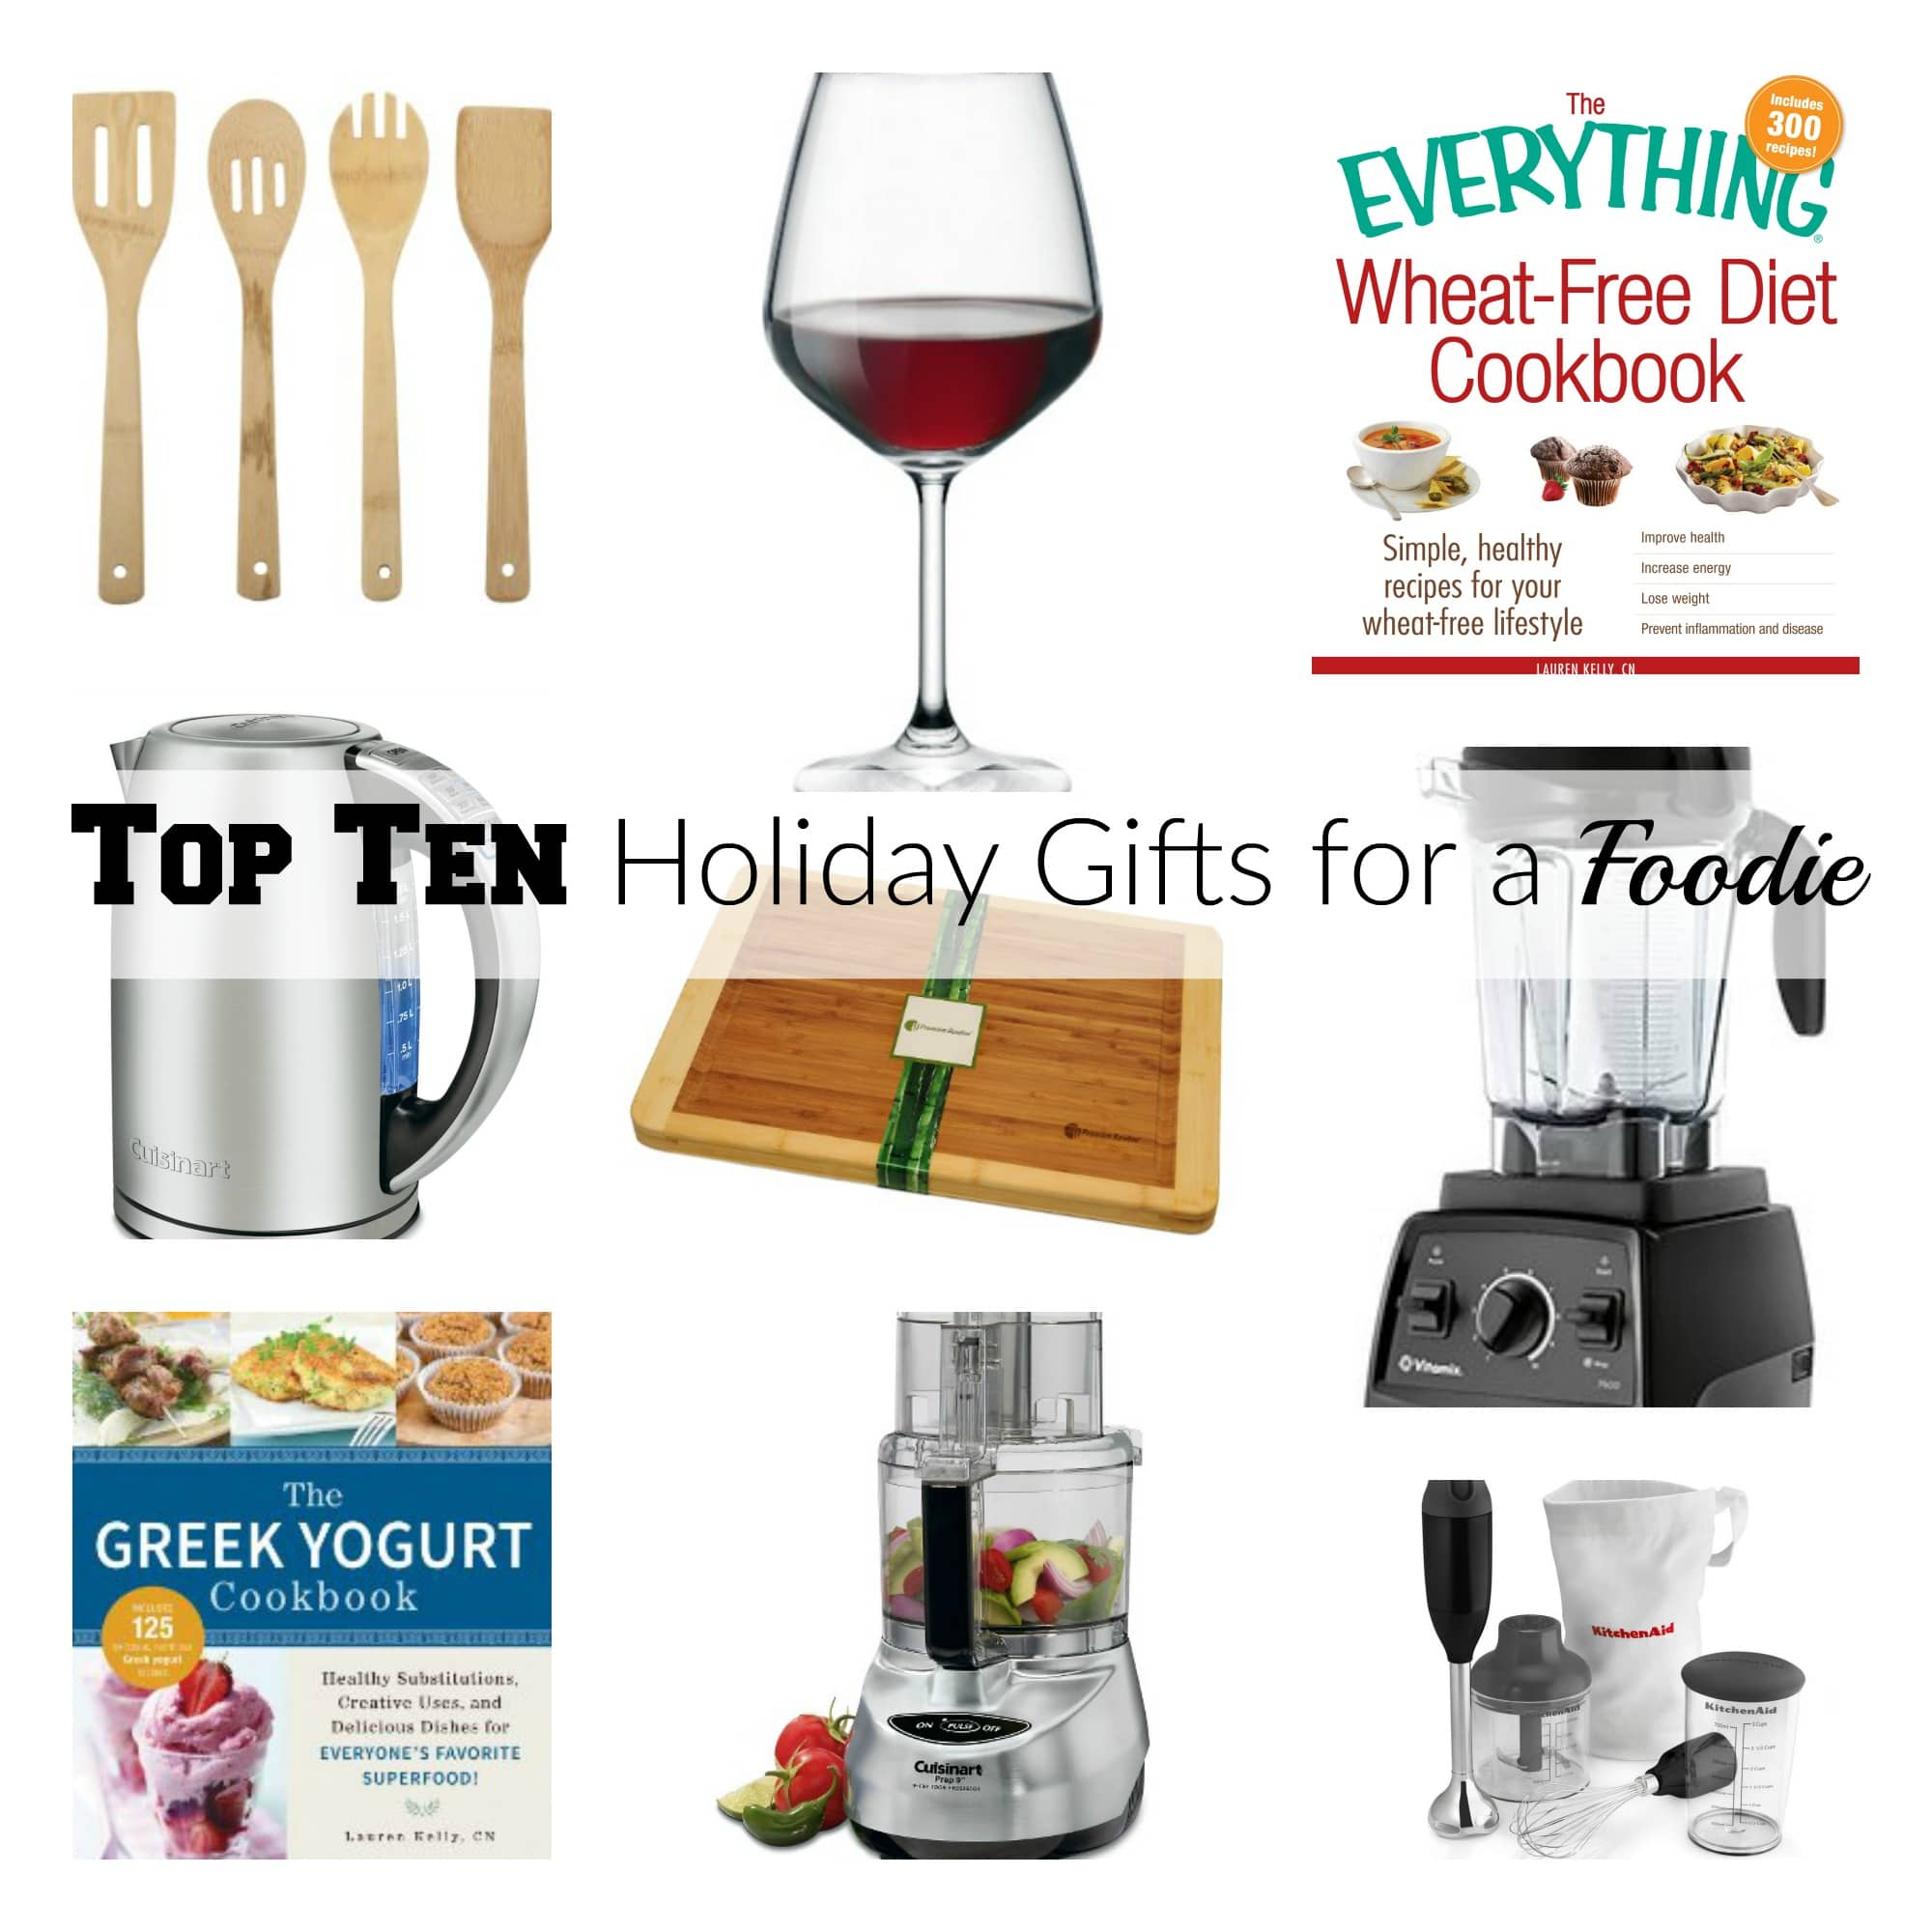 Top Ten Holiday Gifts for a Foodie by Lauren Kelly Nutrition